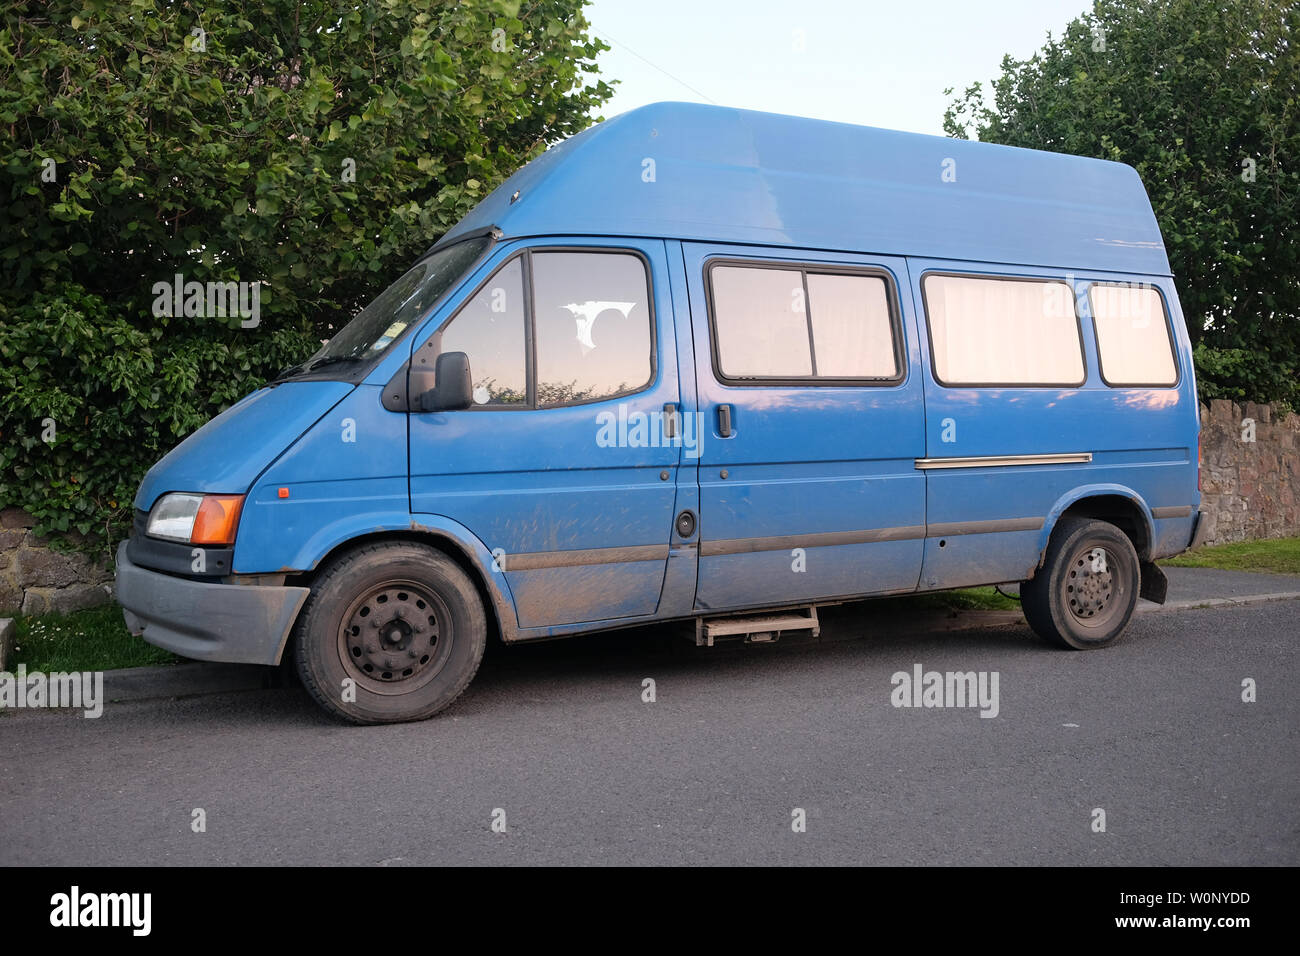 Converted Van Stock Photos & Converted Van Stock Images - Alamy